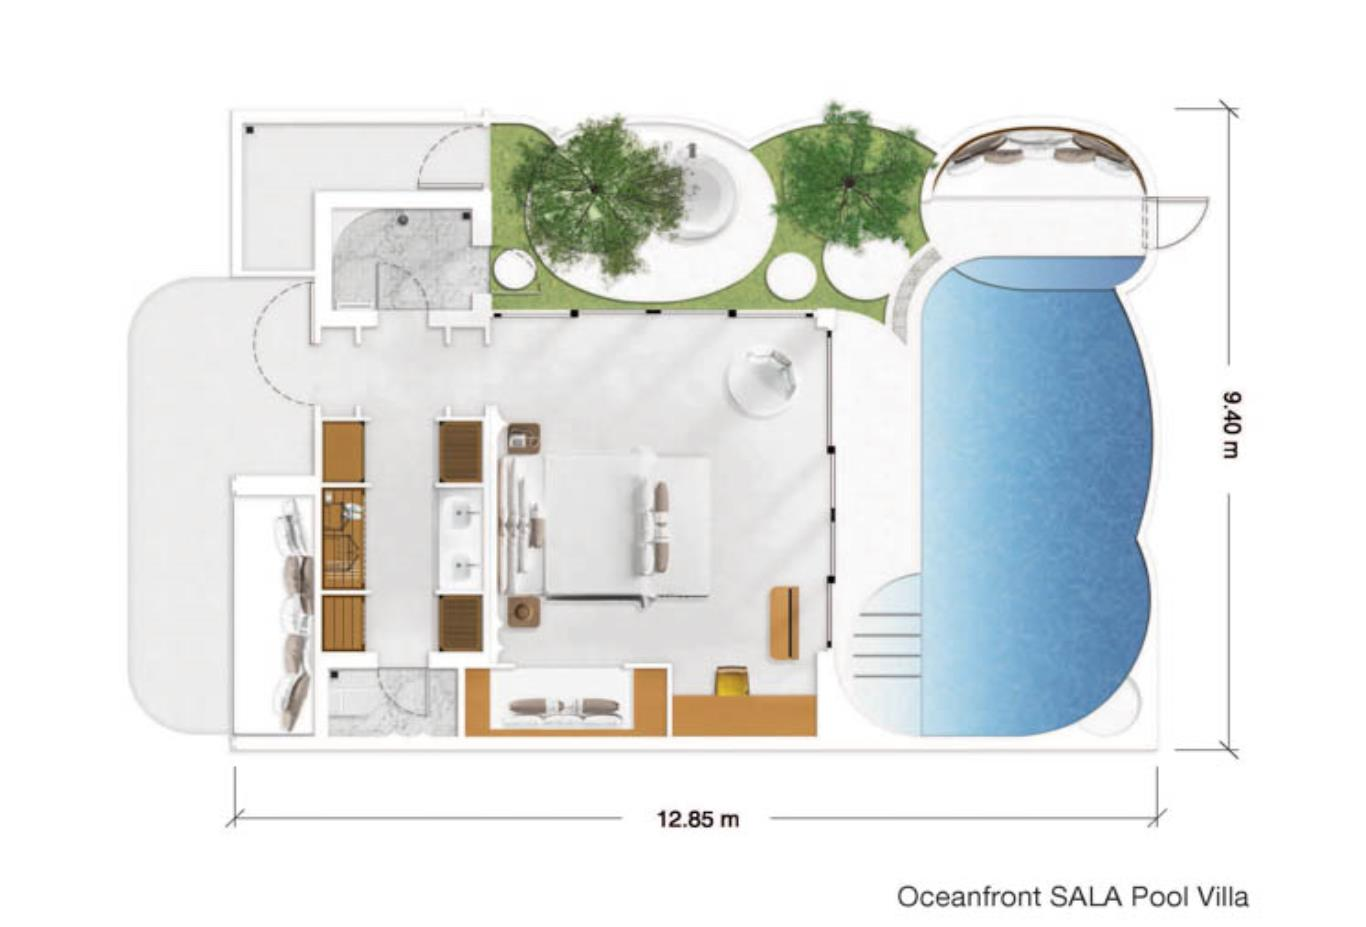 Oceanfront SALA Pool VIlla floorplan